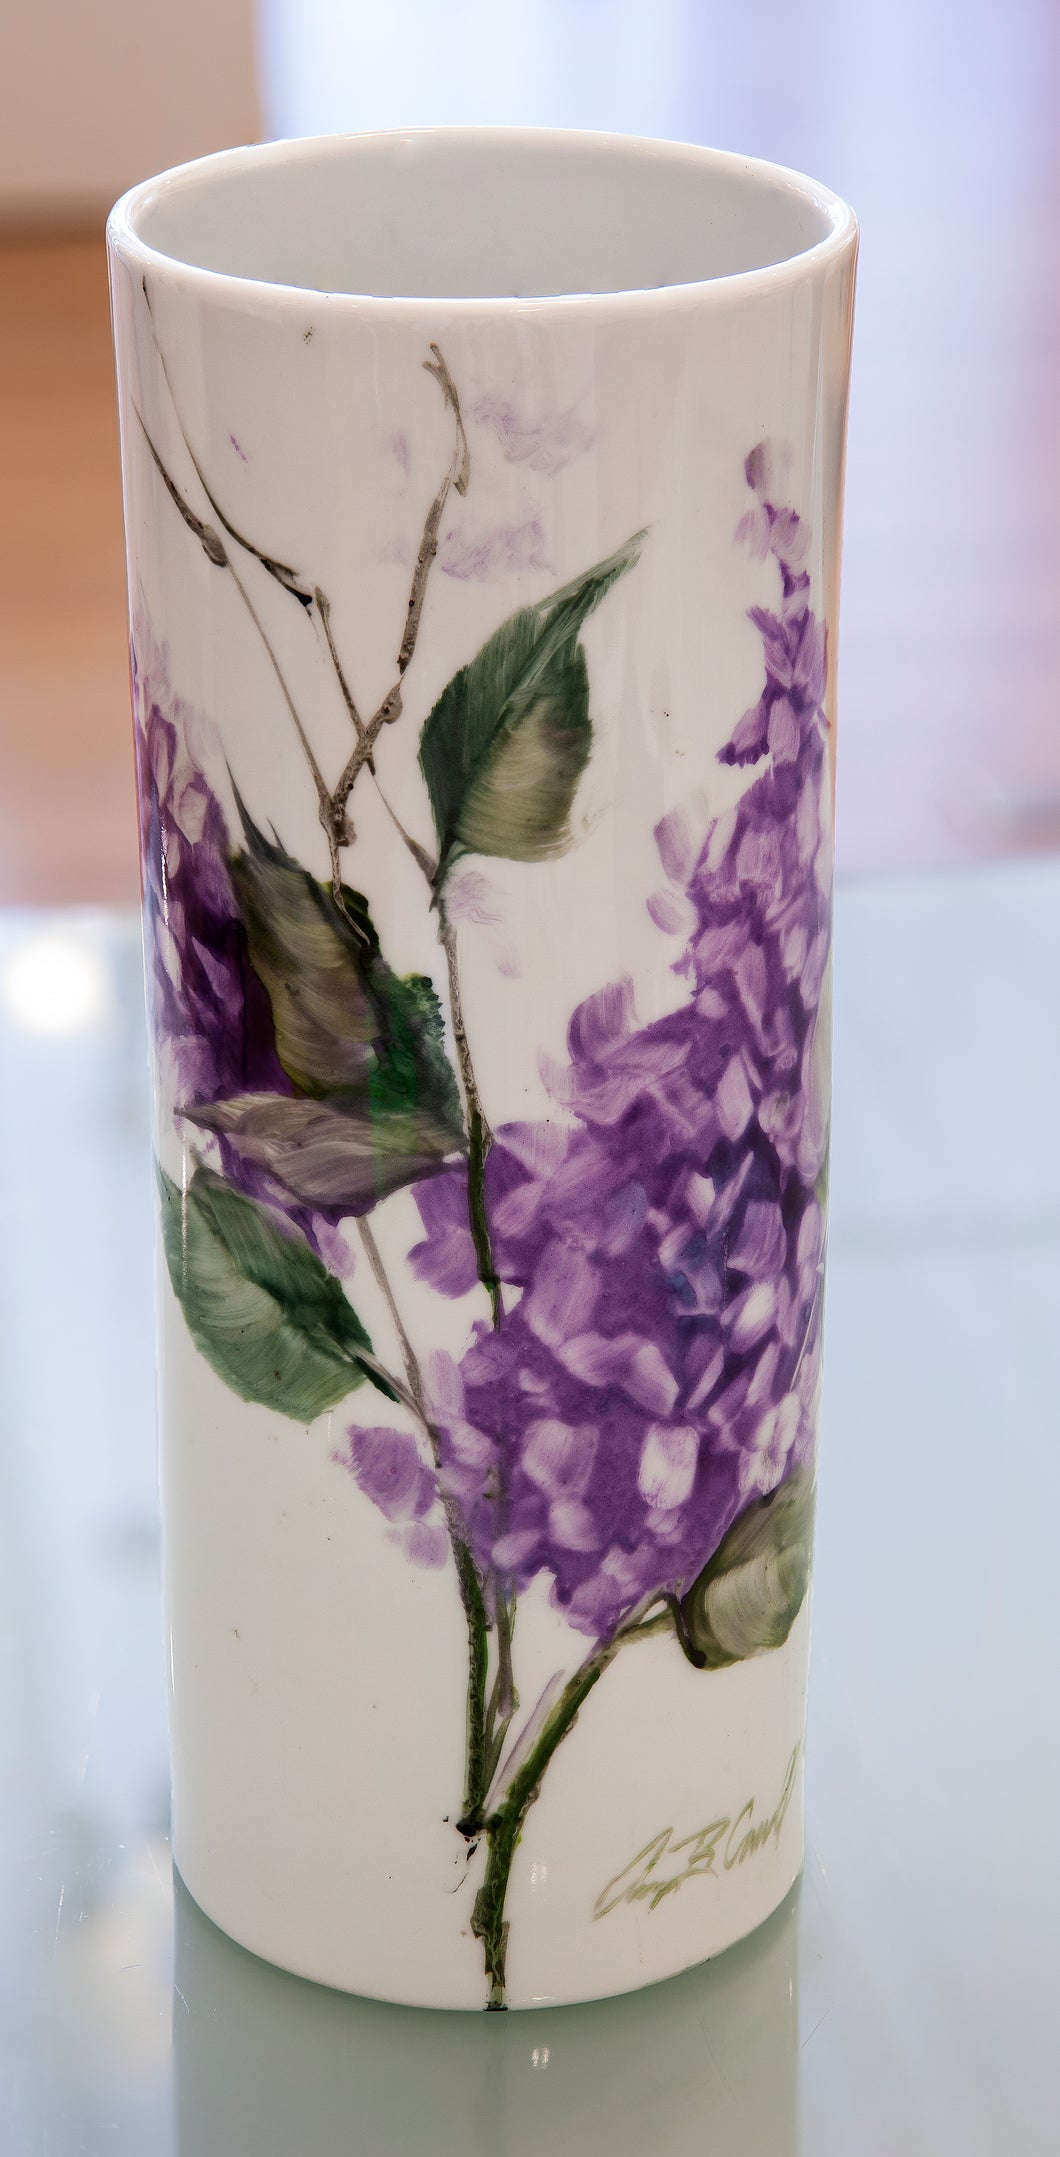 Porcelain Vase #3 by Amy Carroll